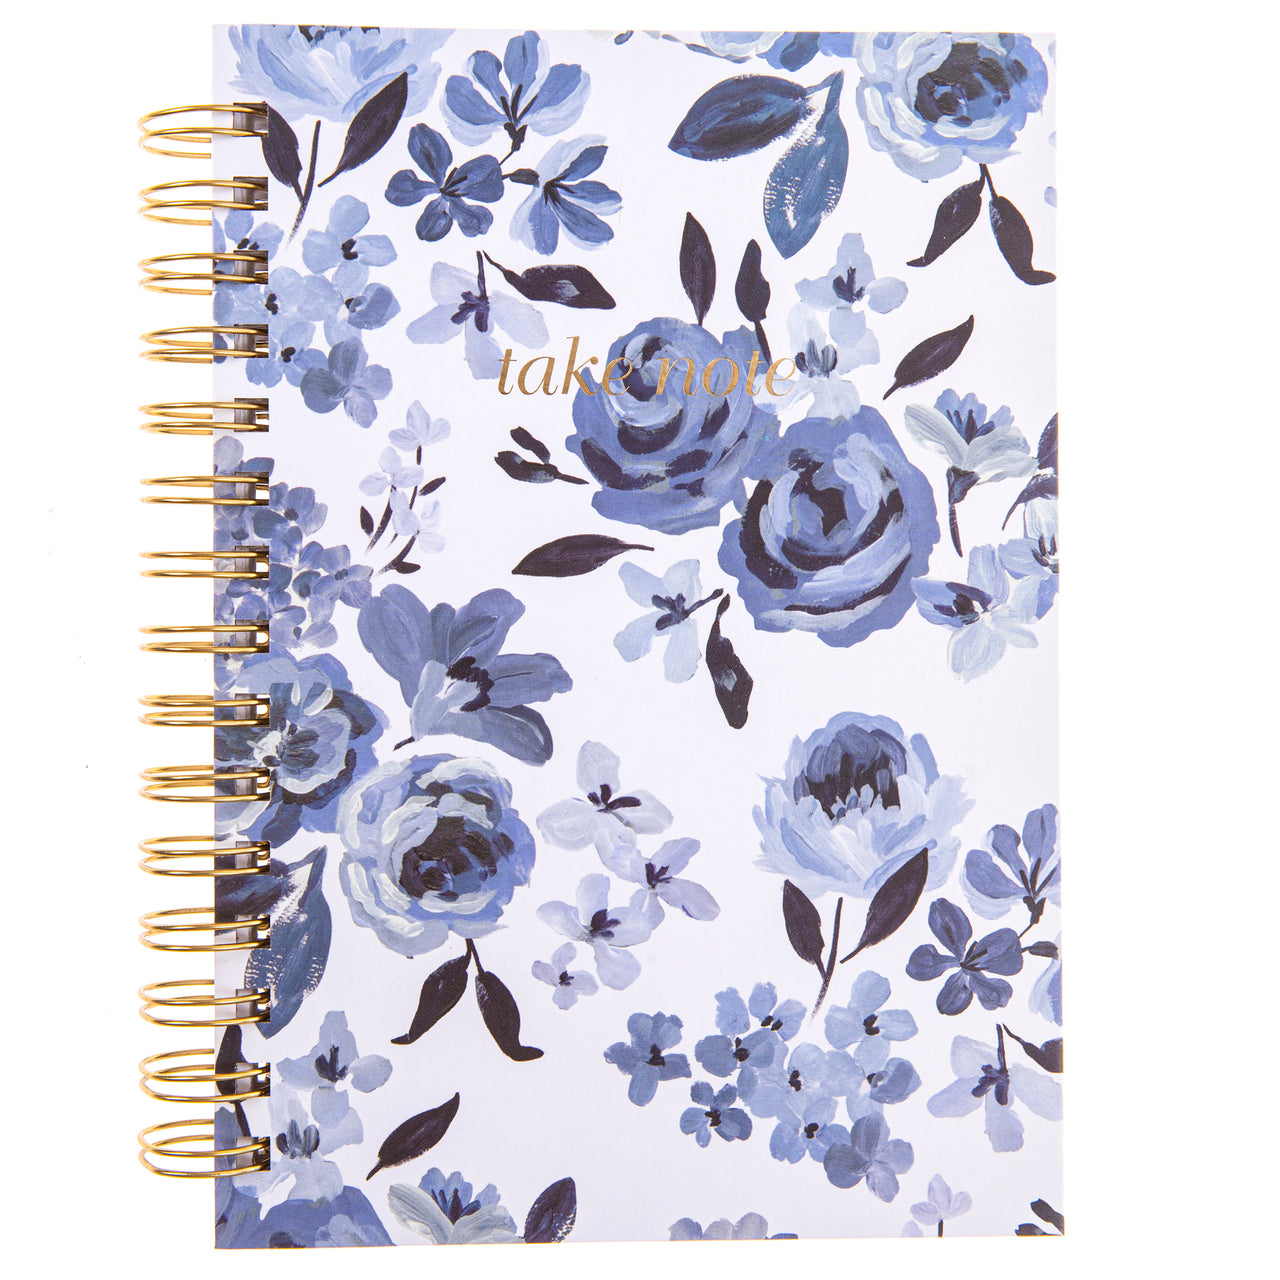 Caitlin Wilson Floral 6x8 Spiral Hard Cover Journal